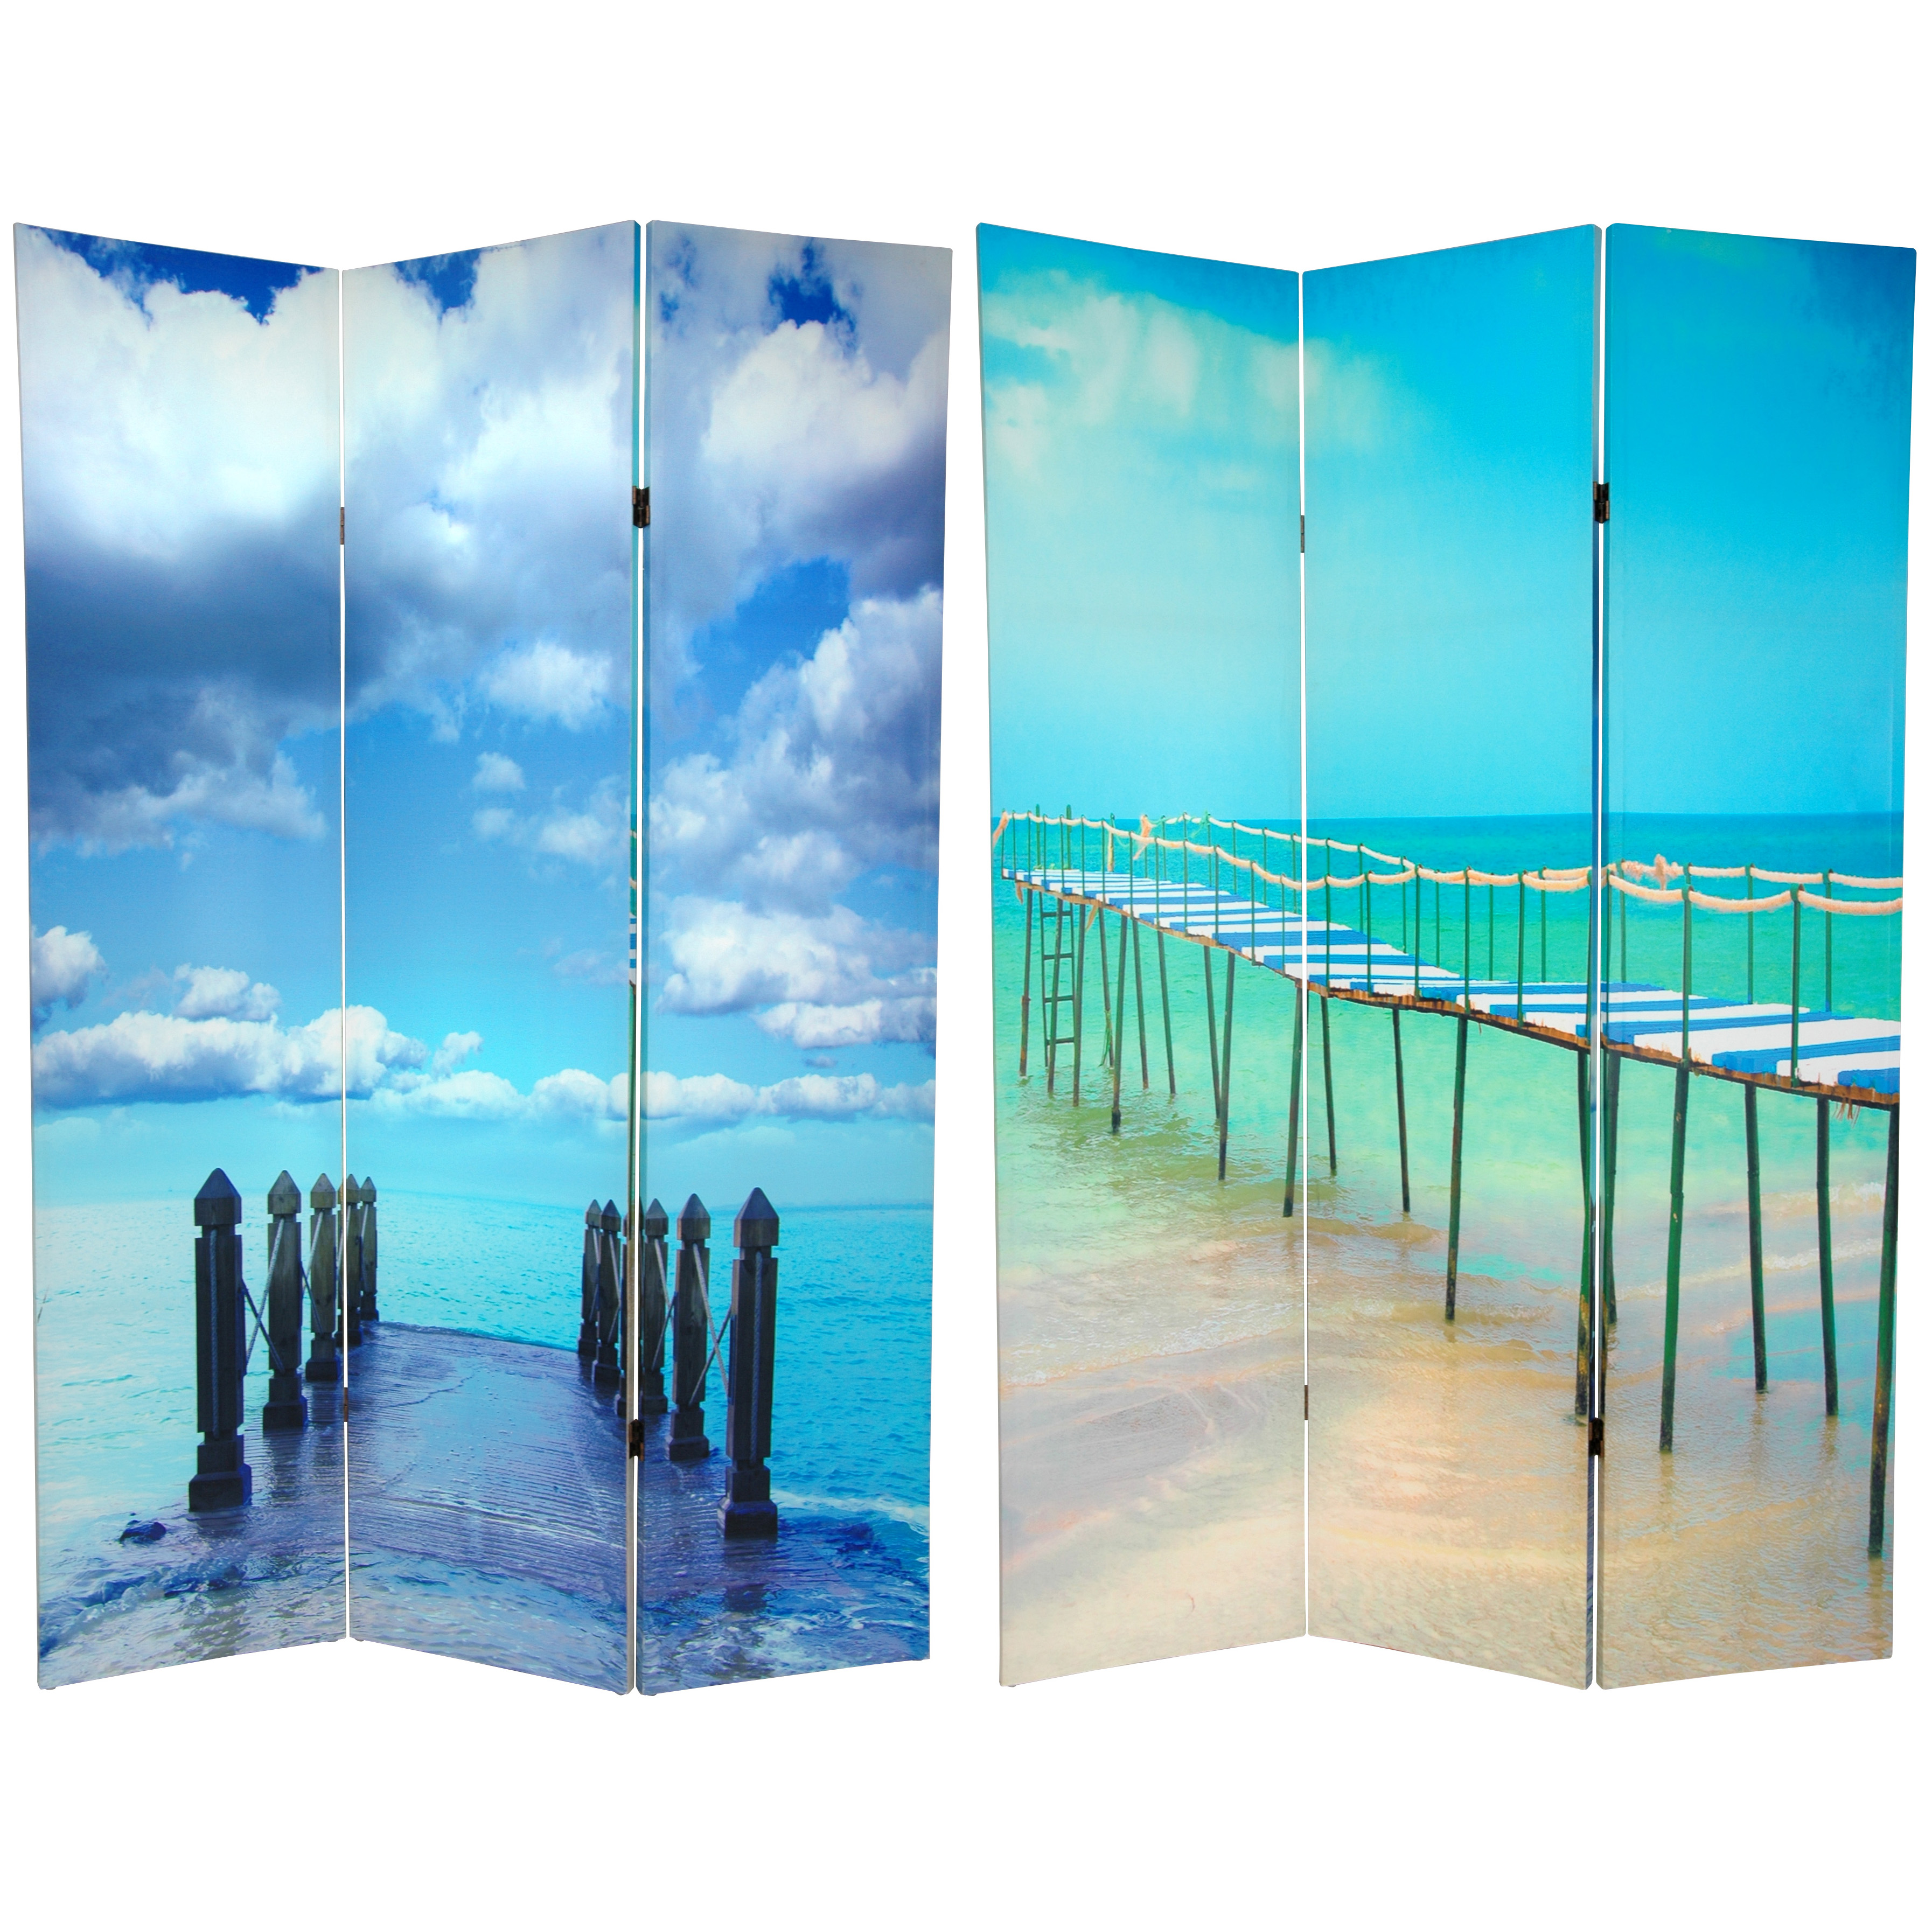 Buy 6 Ft Tall Double Sided Ocean Room Divider Online Can